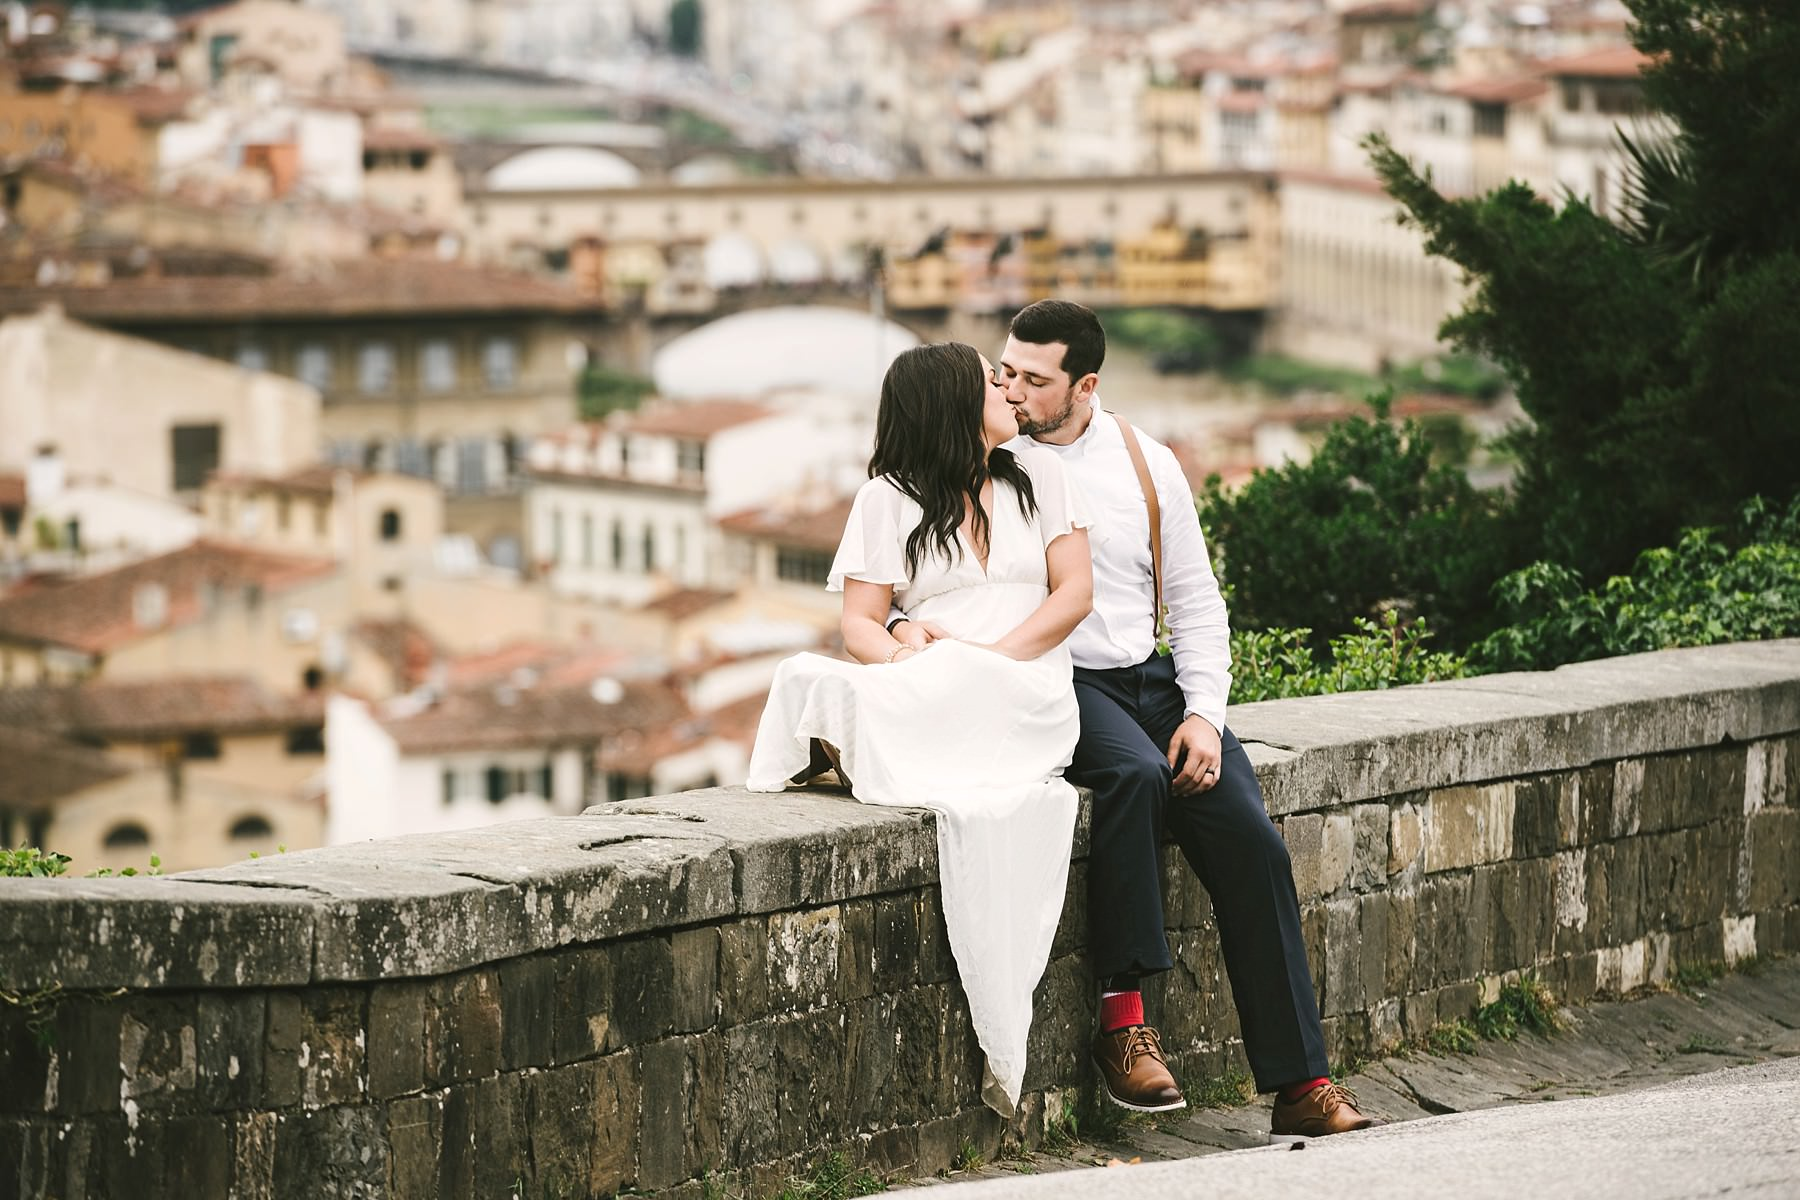 Sweet elopement in Italy to intimately seal your love. Intimate and romantic couple portrait elopement photo in Florence with Ponte Vecchio as background